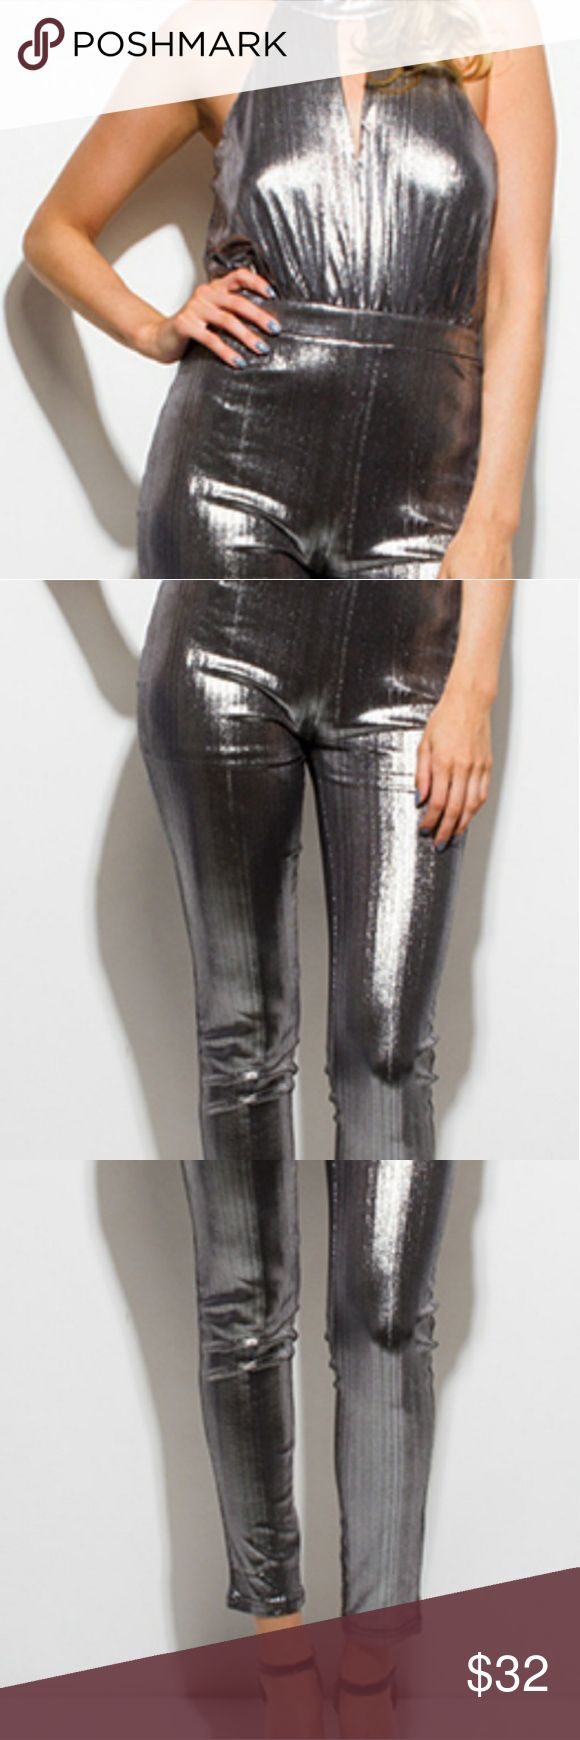 XYAREN METALIC SILVER JUMPSUIT This jumpsuit is sure to turn heads. It has a key hole detal and goes with any occasion. Wear with black heels. Xtaren Pants Jumpsuits & Rompers